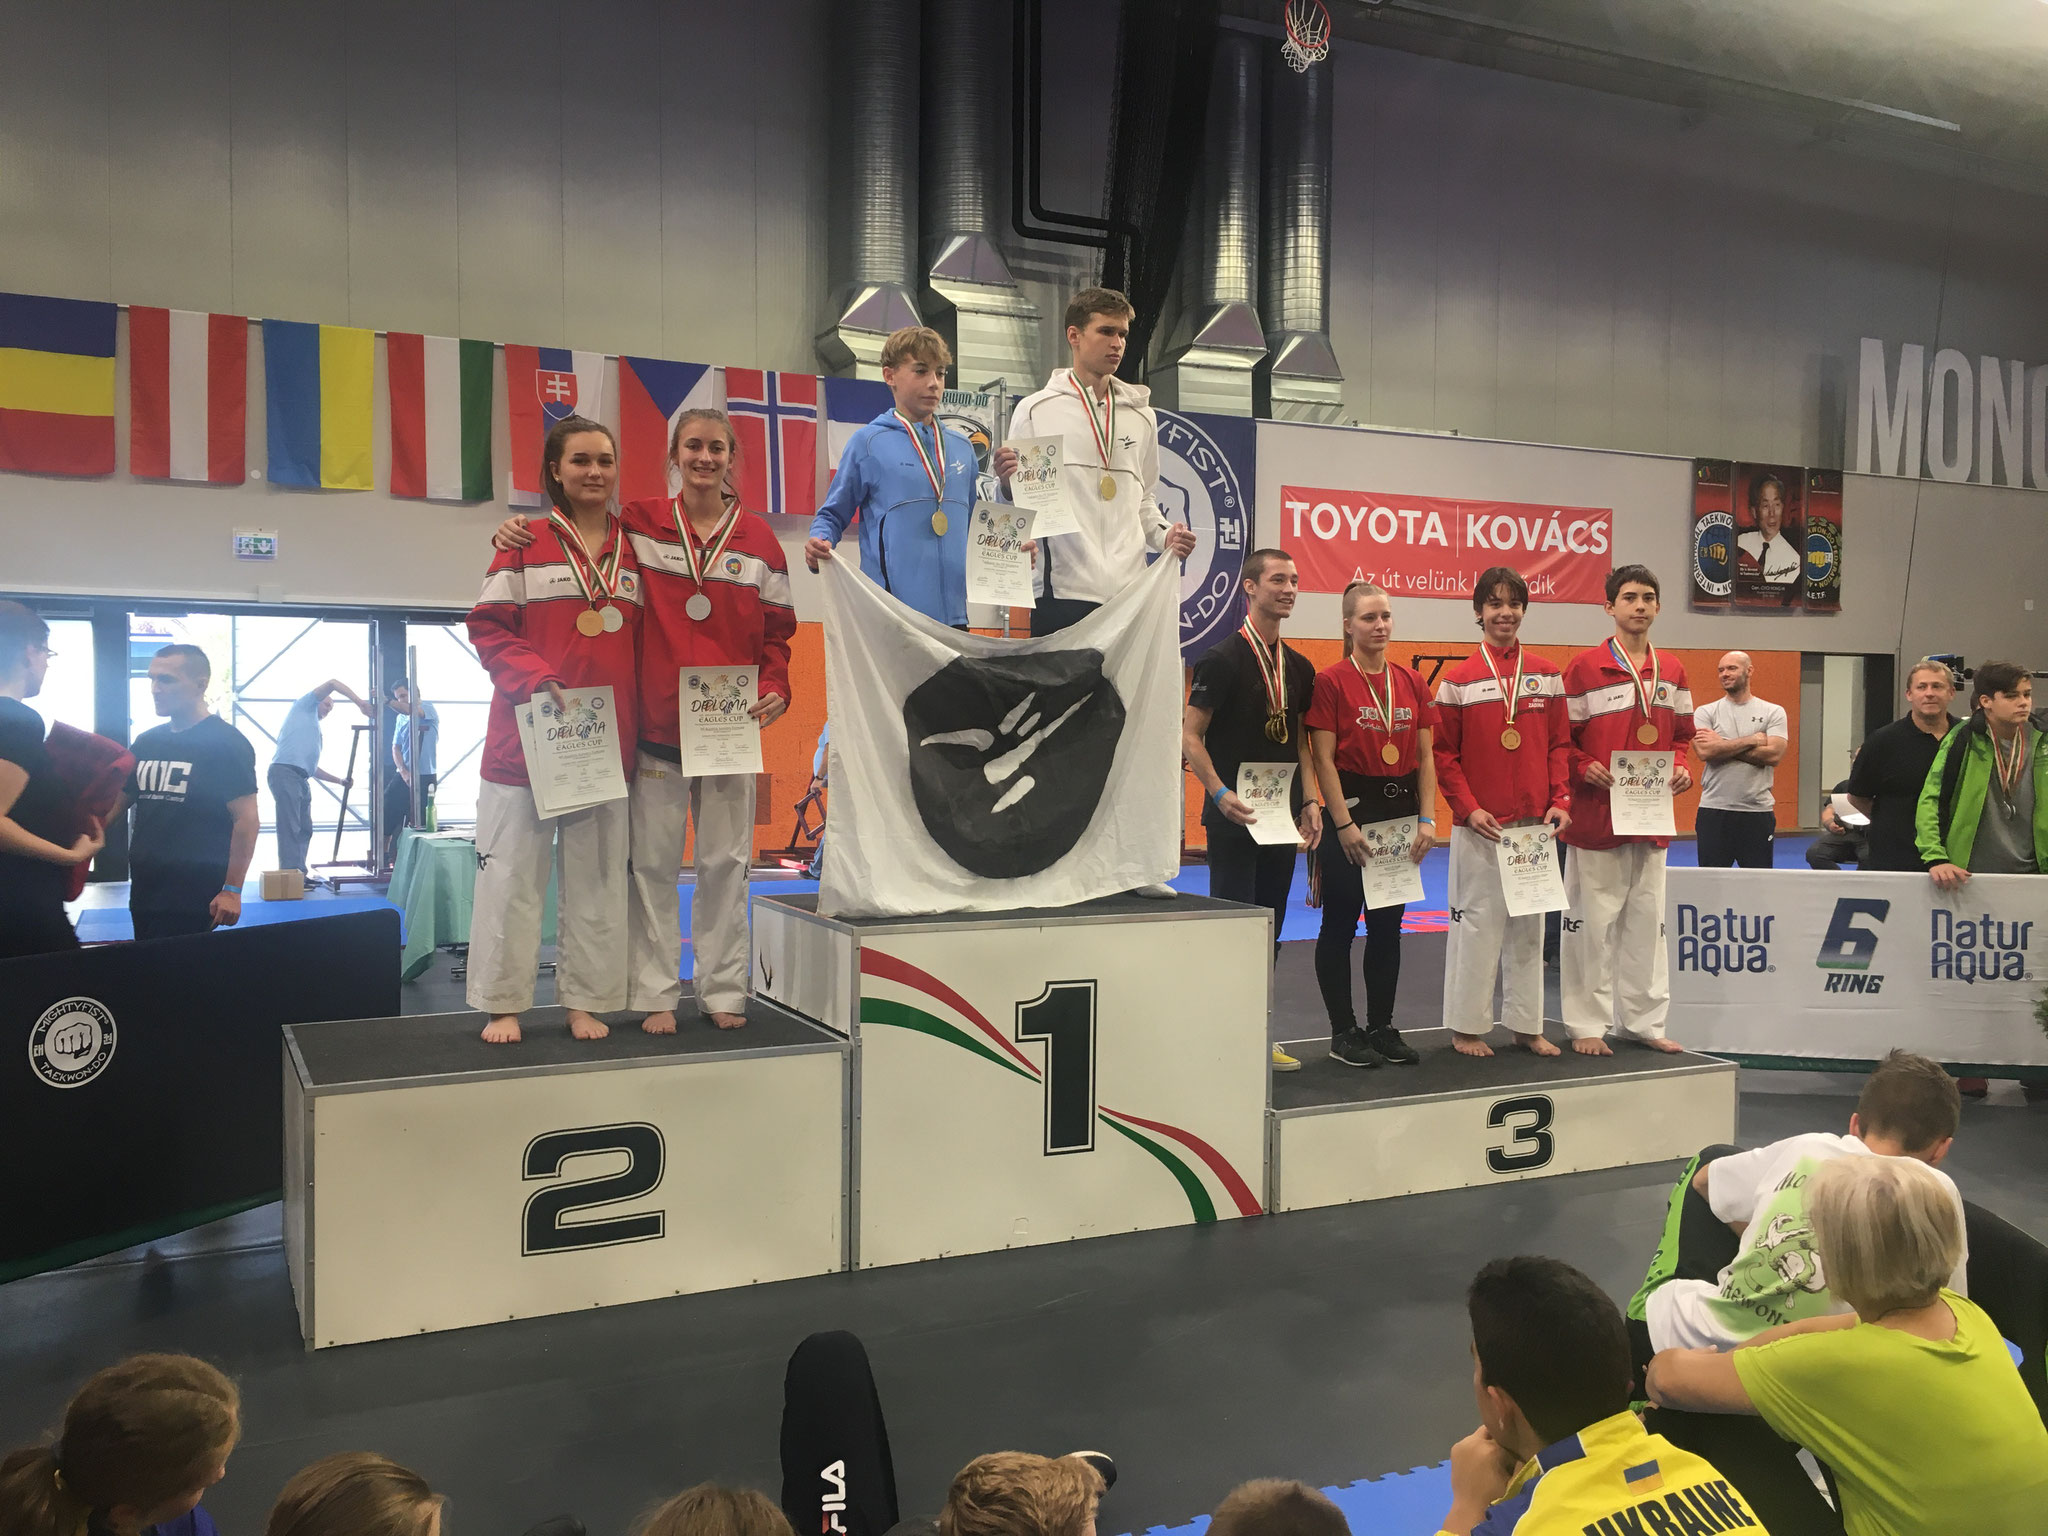 Katja & Evelina - 2. Platz im Pre arranged Sparring